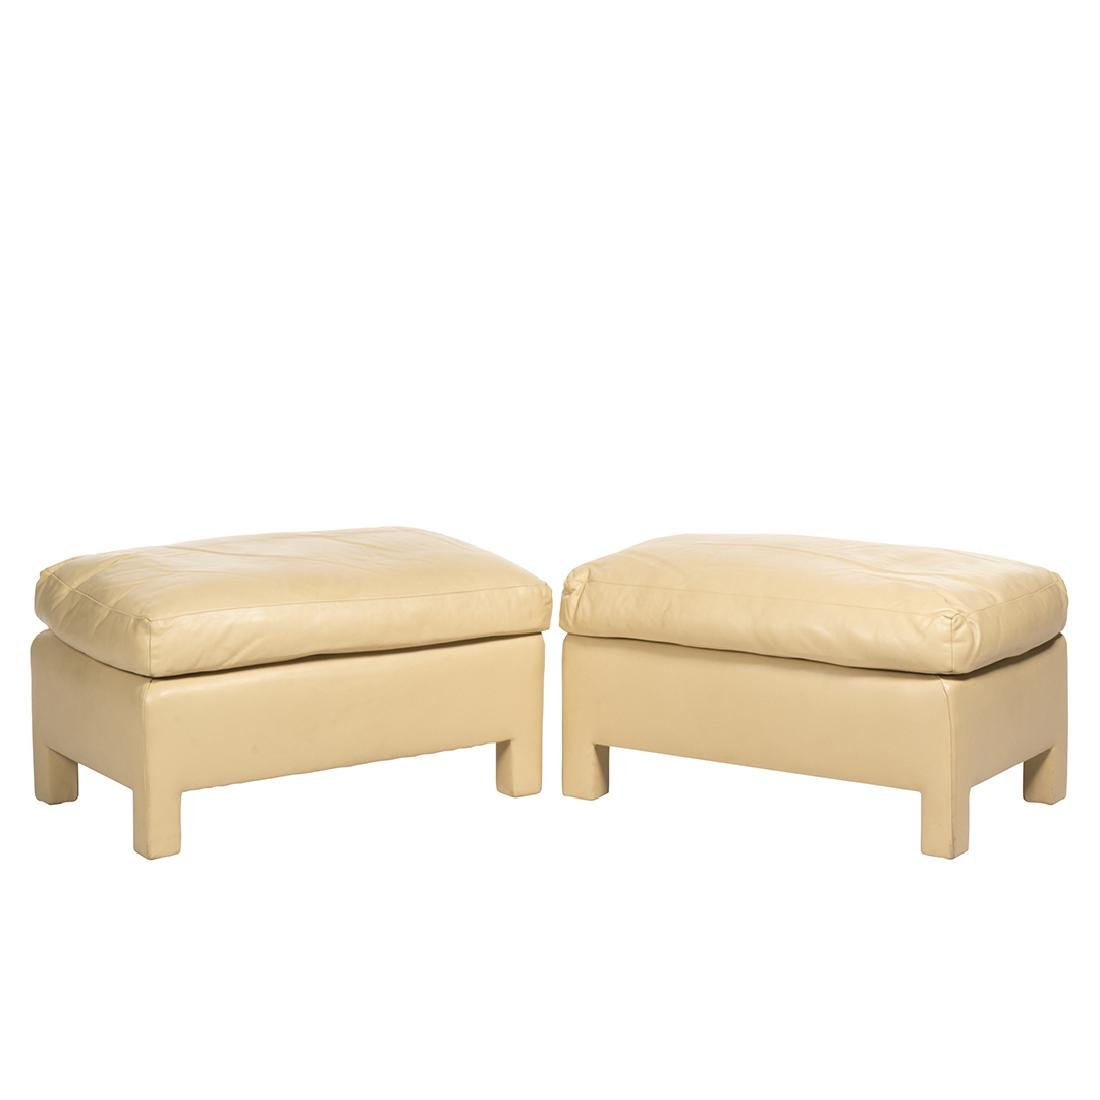 Donghia Leather Ottomans (2)